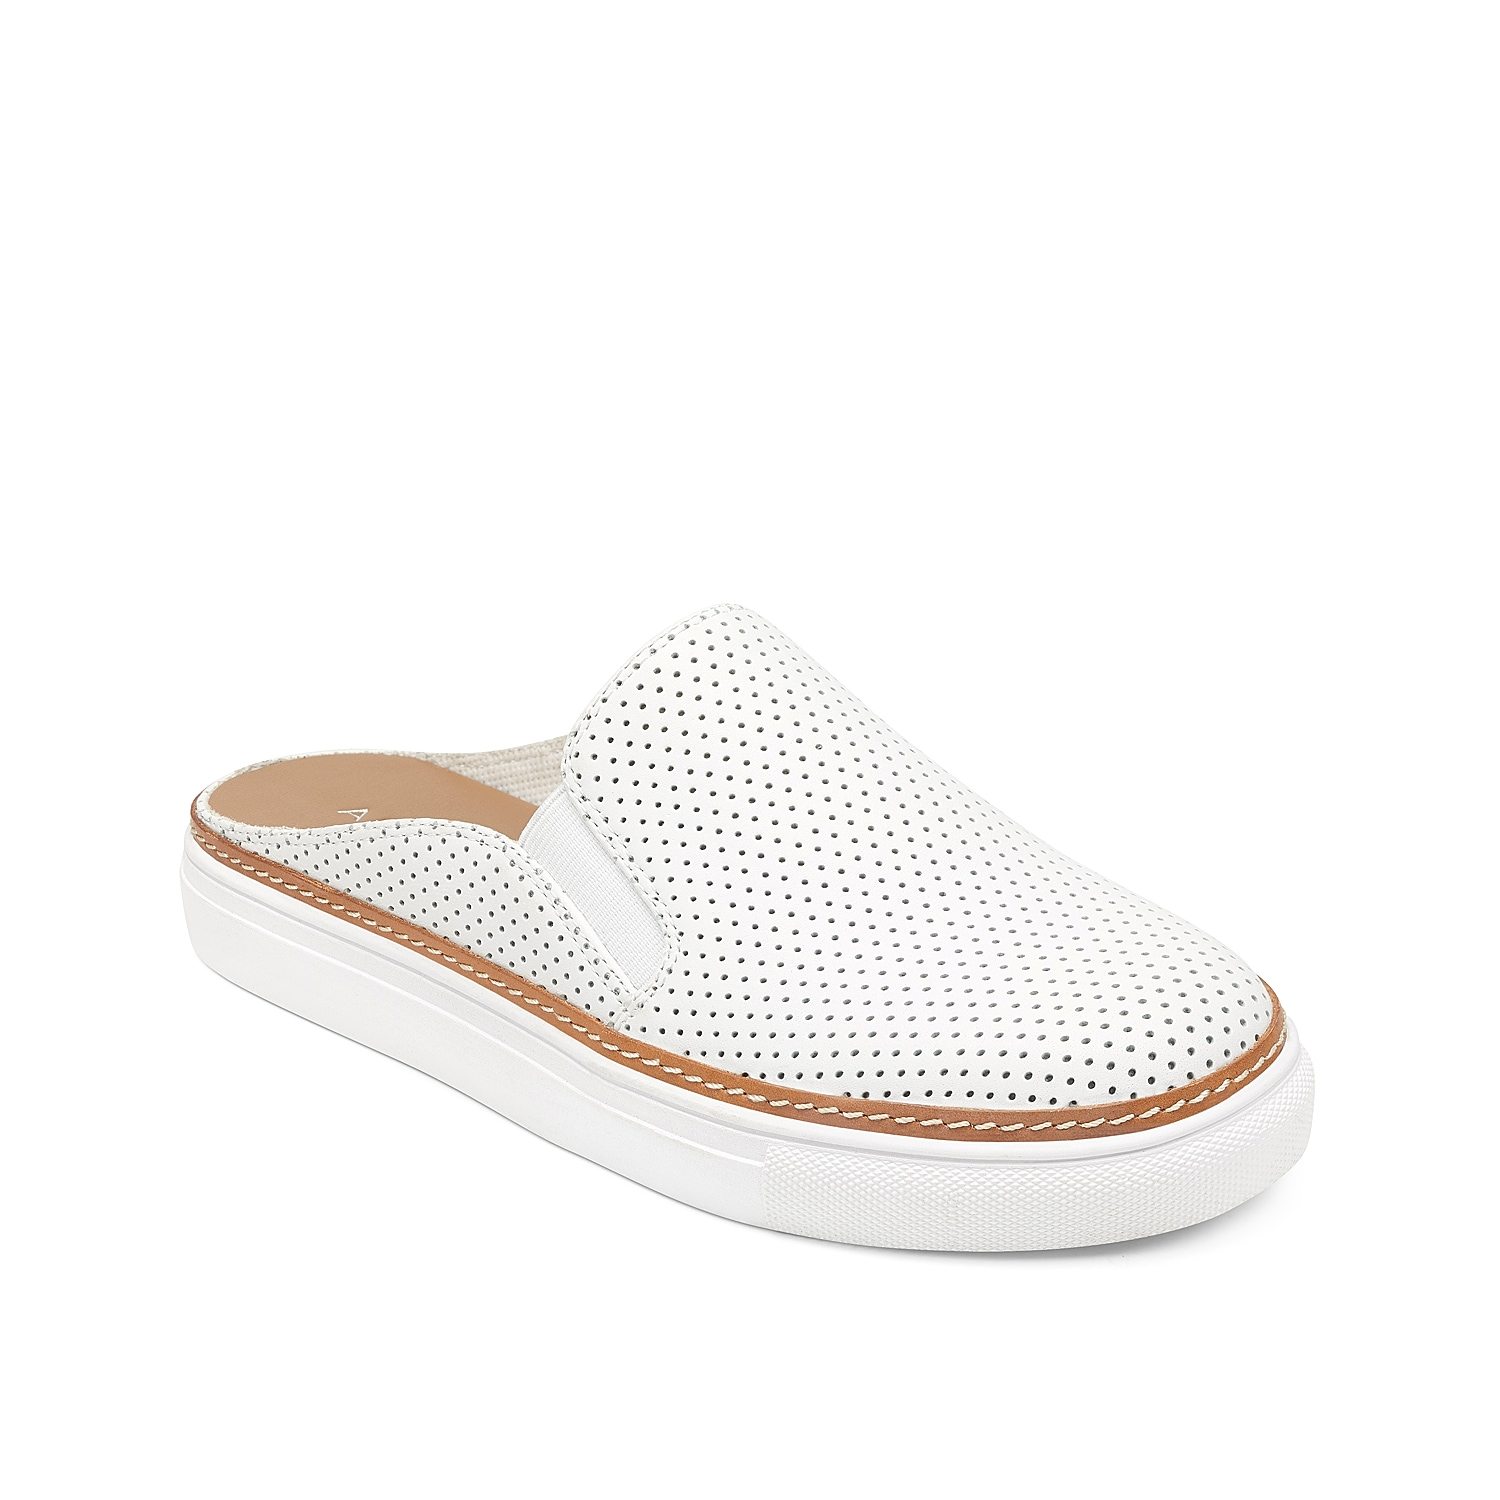 Casual style comes easy with the Niagara slip-on sneaker from Aerosoles. This backless pair features a perforated leather upper and a Core Comfort footbed for cushioned steps!